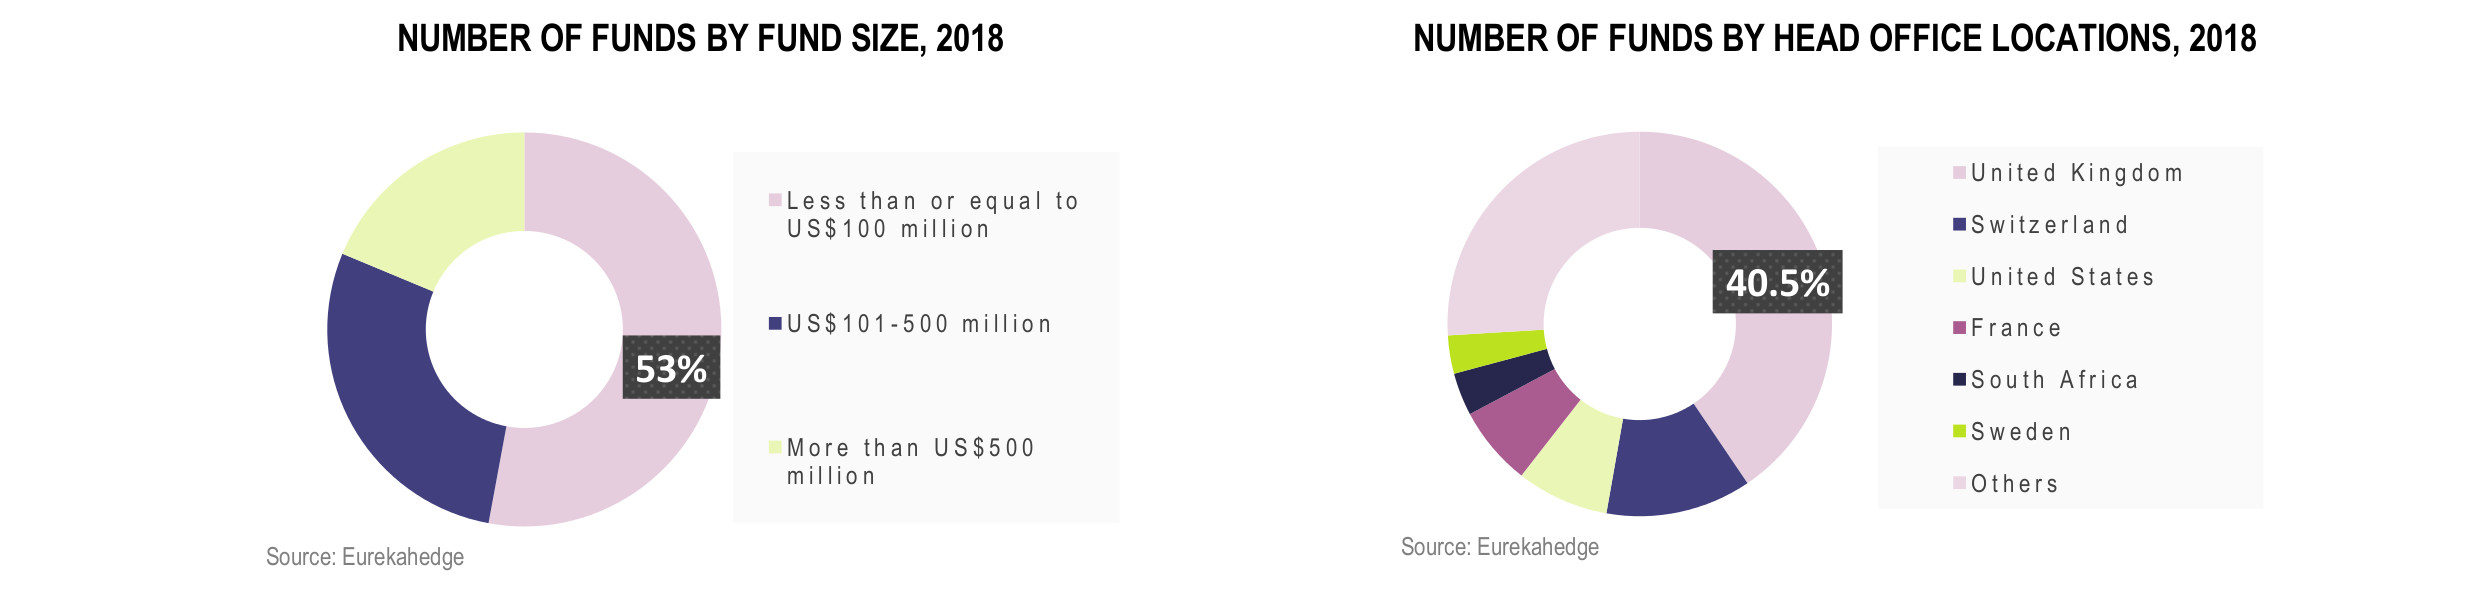 European Hedge Funds Infographic December 2018 - number of funds by fund size, number of funds by head office locations